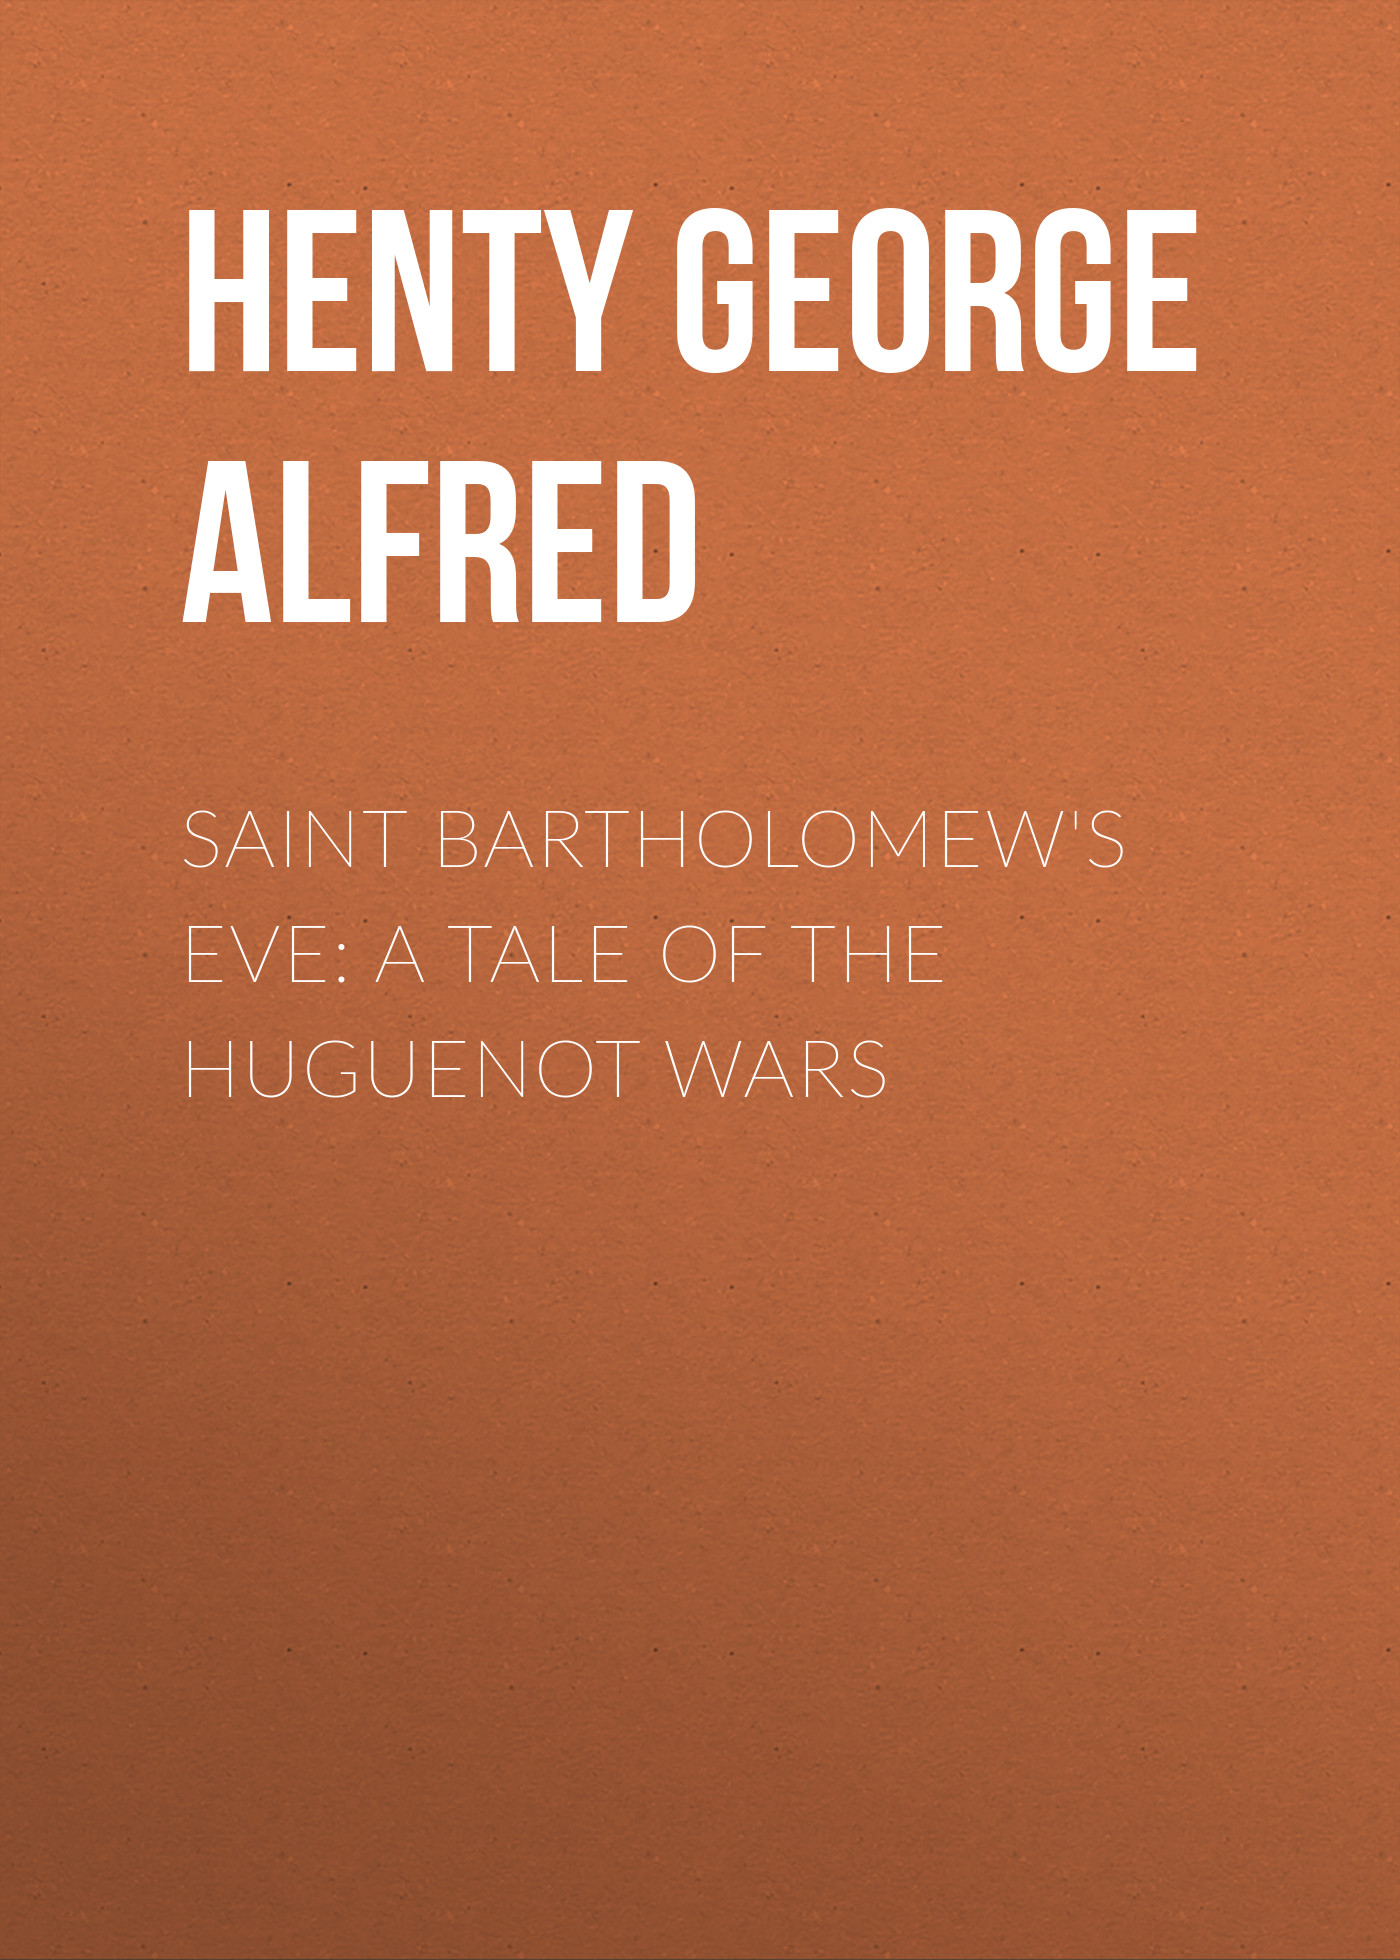 Henty George Alfred Saint Bartholomew's Eve: A Tale of the Huguenot Wars henty george alfred for the temple a tale of the fall of jerusalem